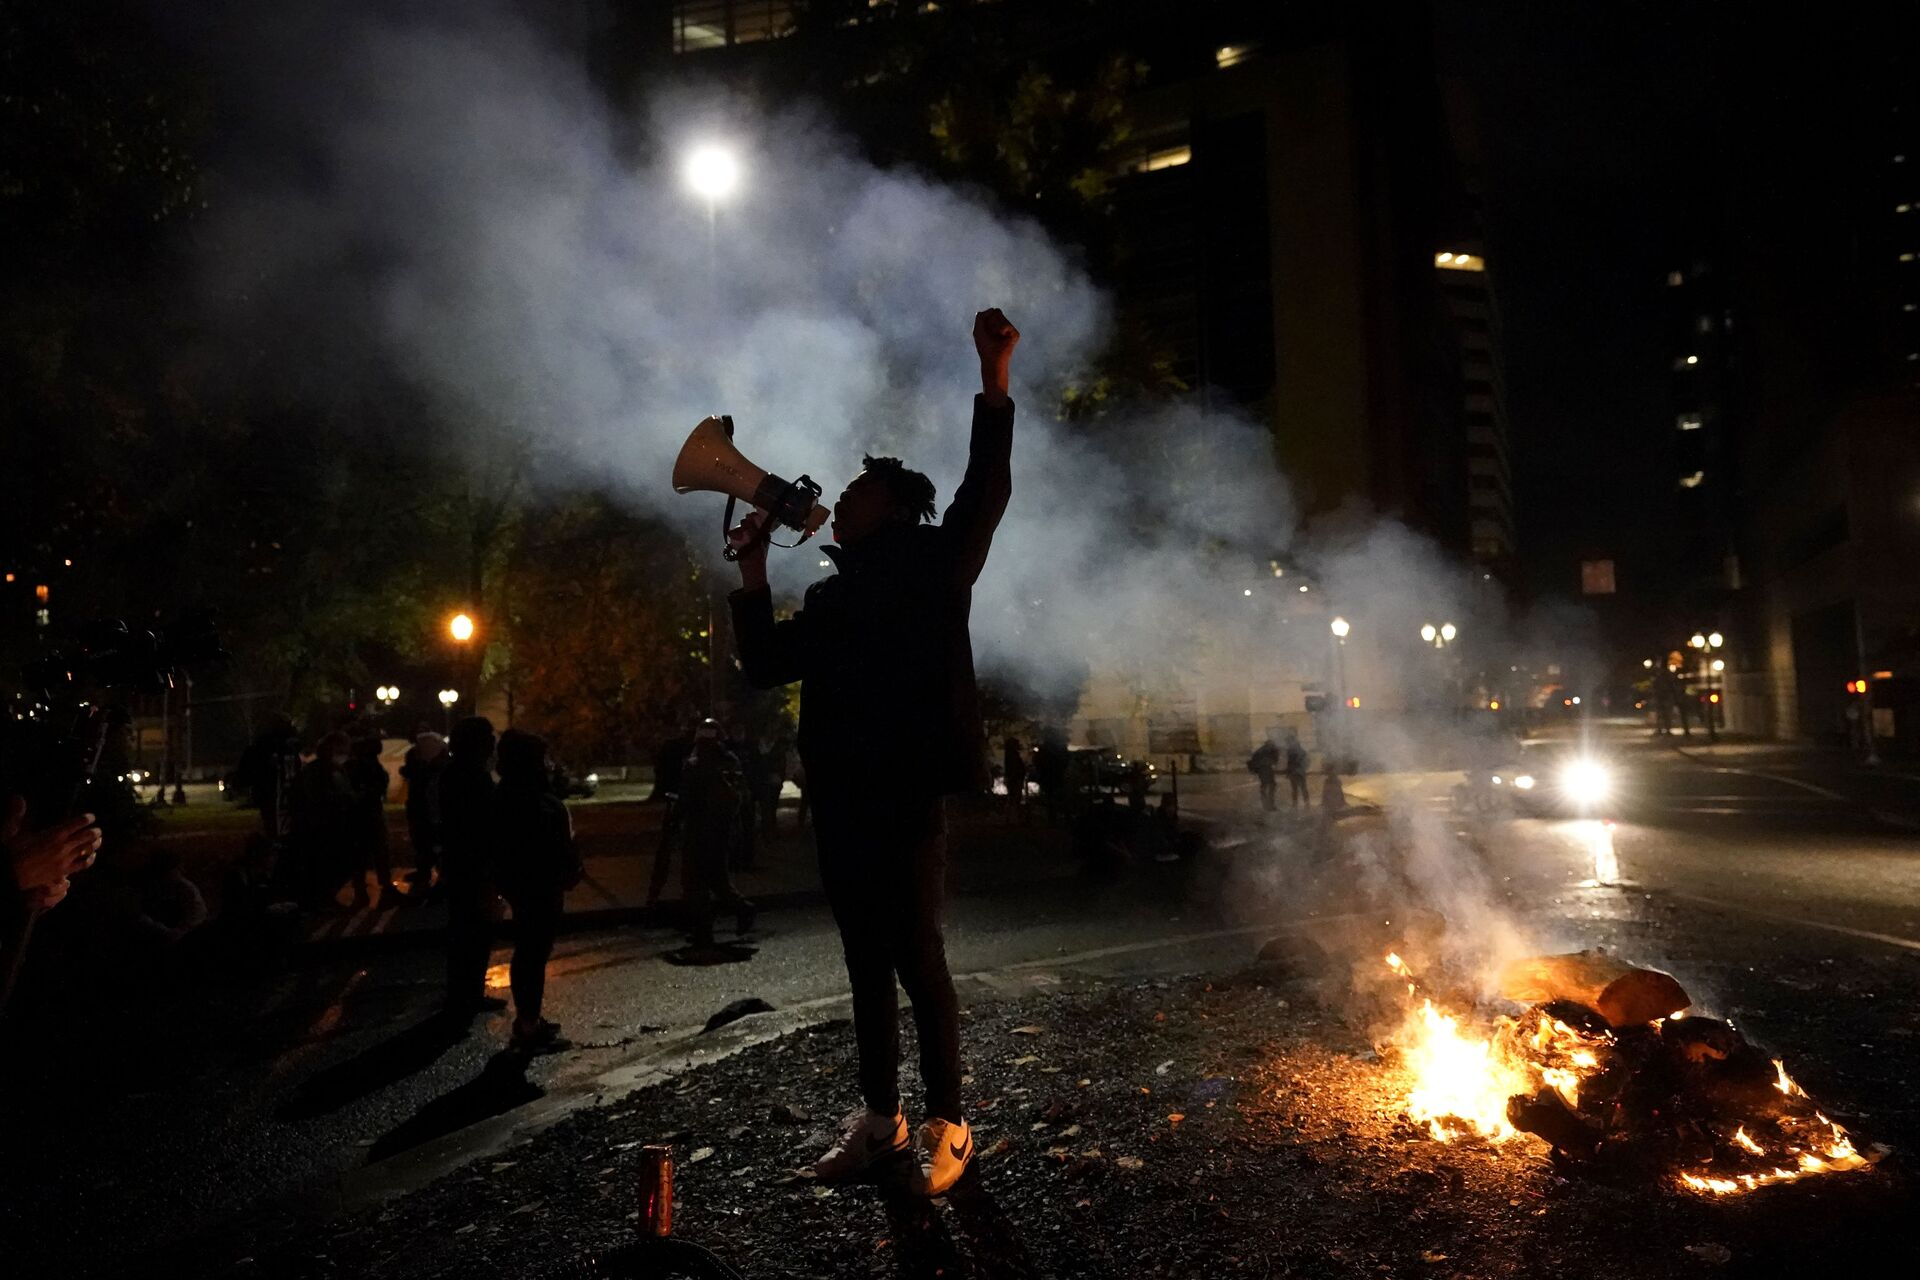 A protester yells after a march to the Mark O. Hatfield United States Courthouse on the night of the election, Tuesday, Nov. 3, 2020, in Portland, Ore. - Sputnik International, 1920, 07.09.2021